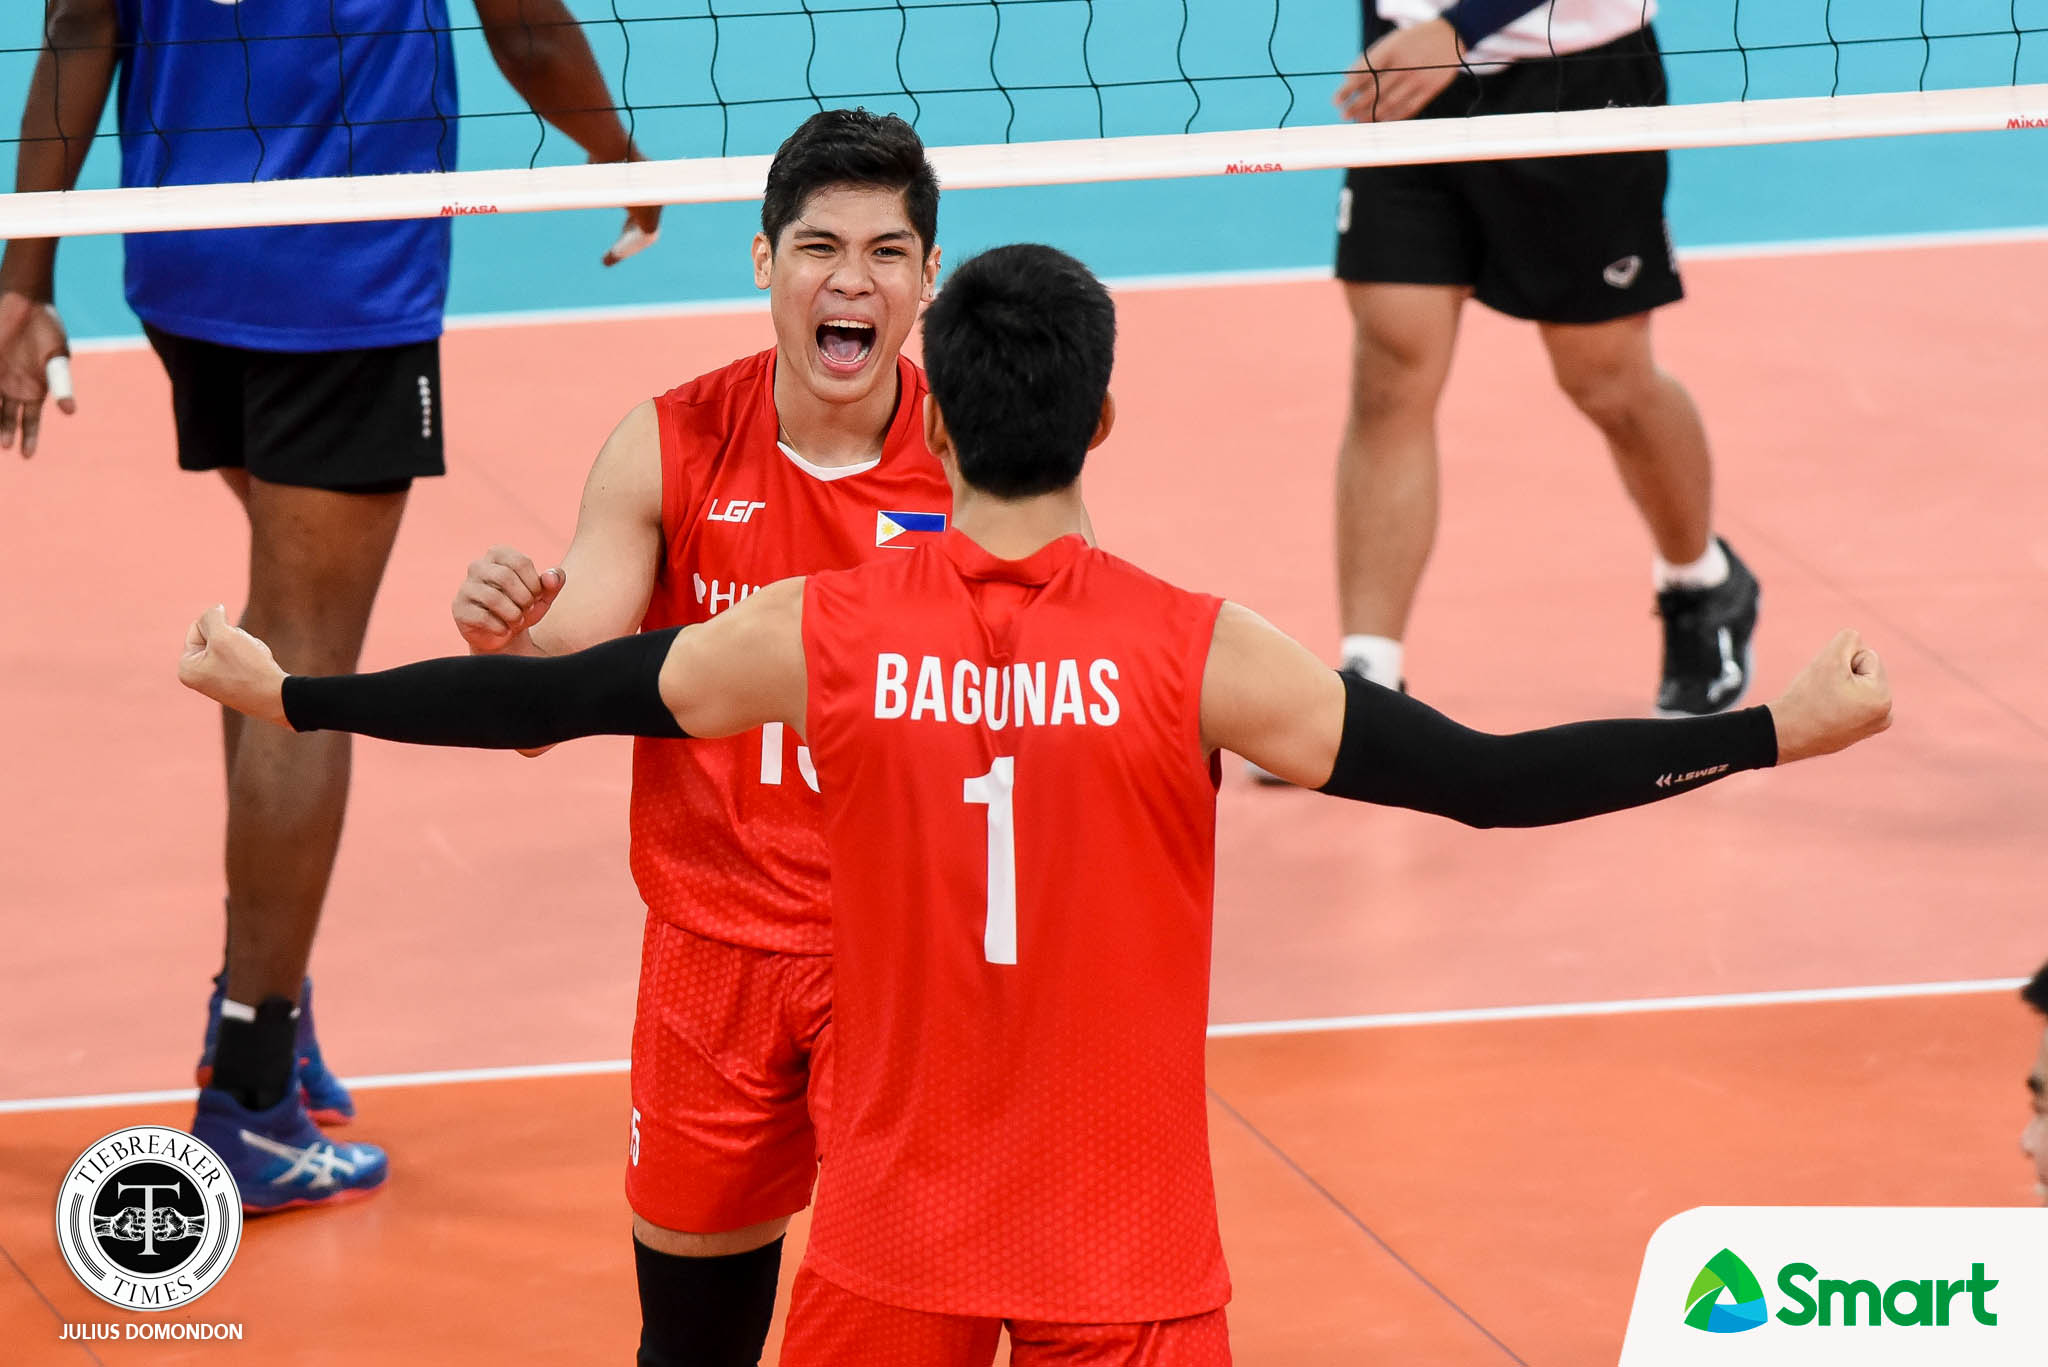 SEA-GAMES-2019-MVB-1ST-PHOTO-ESPEJO-BAGUNAS Marck Espejo to make Thailand return, signs with Visakha VC 2019 SEA Games News Volleyball  - philippine sports news